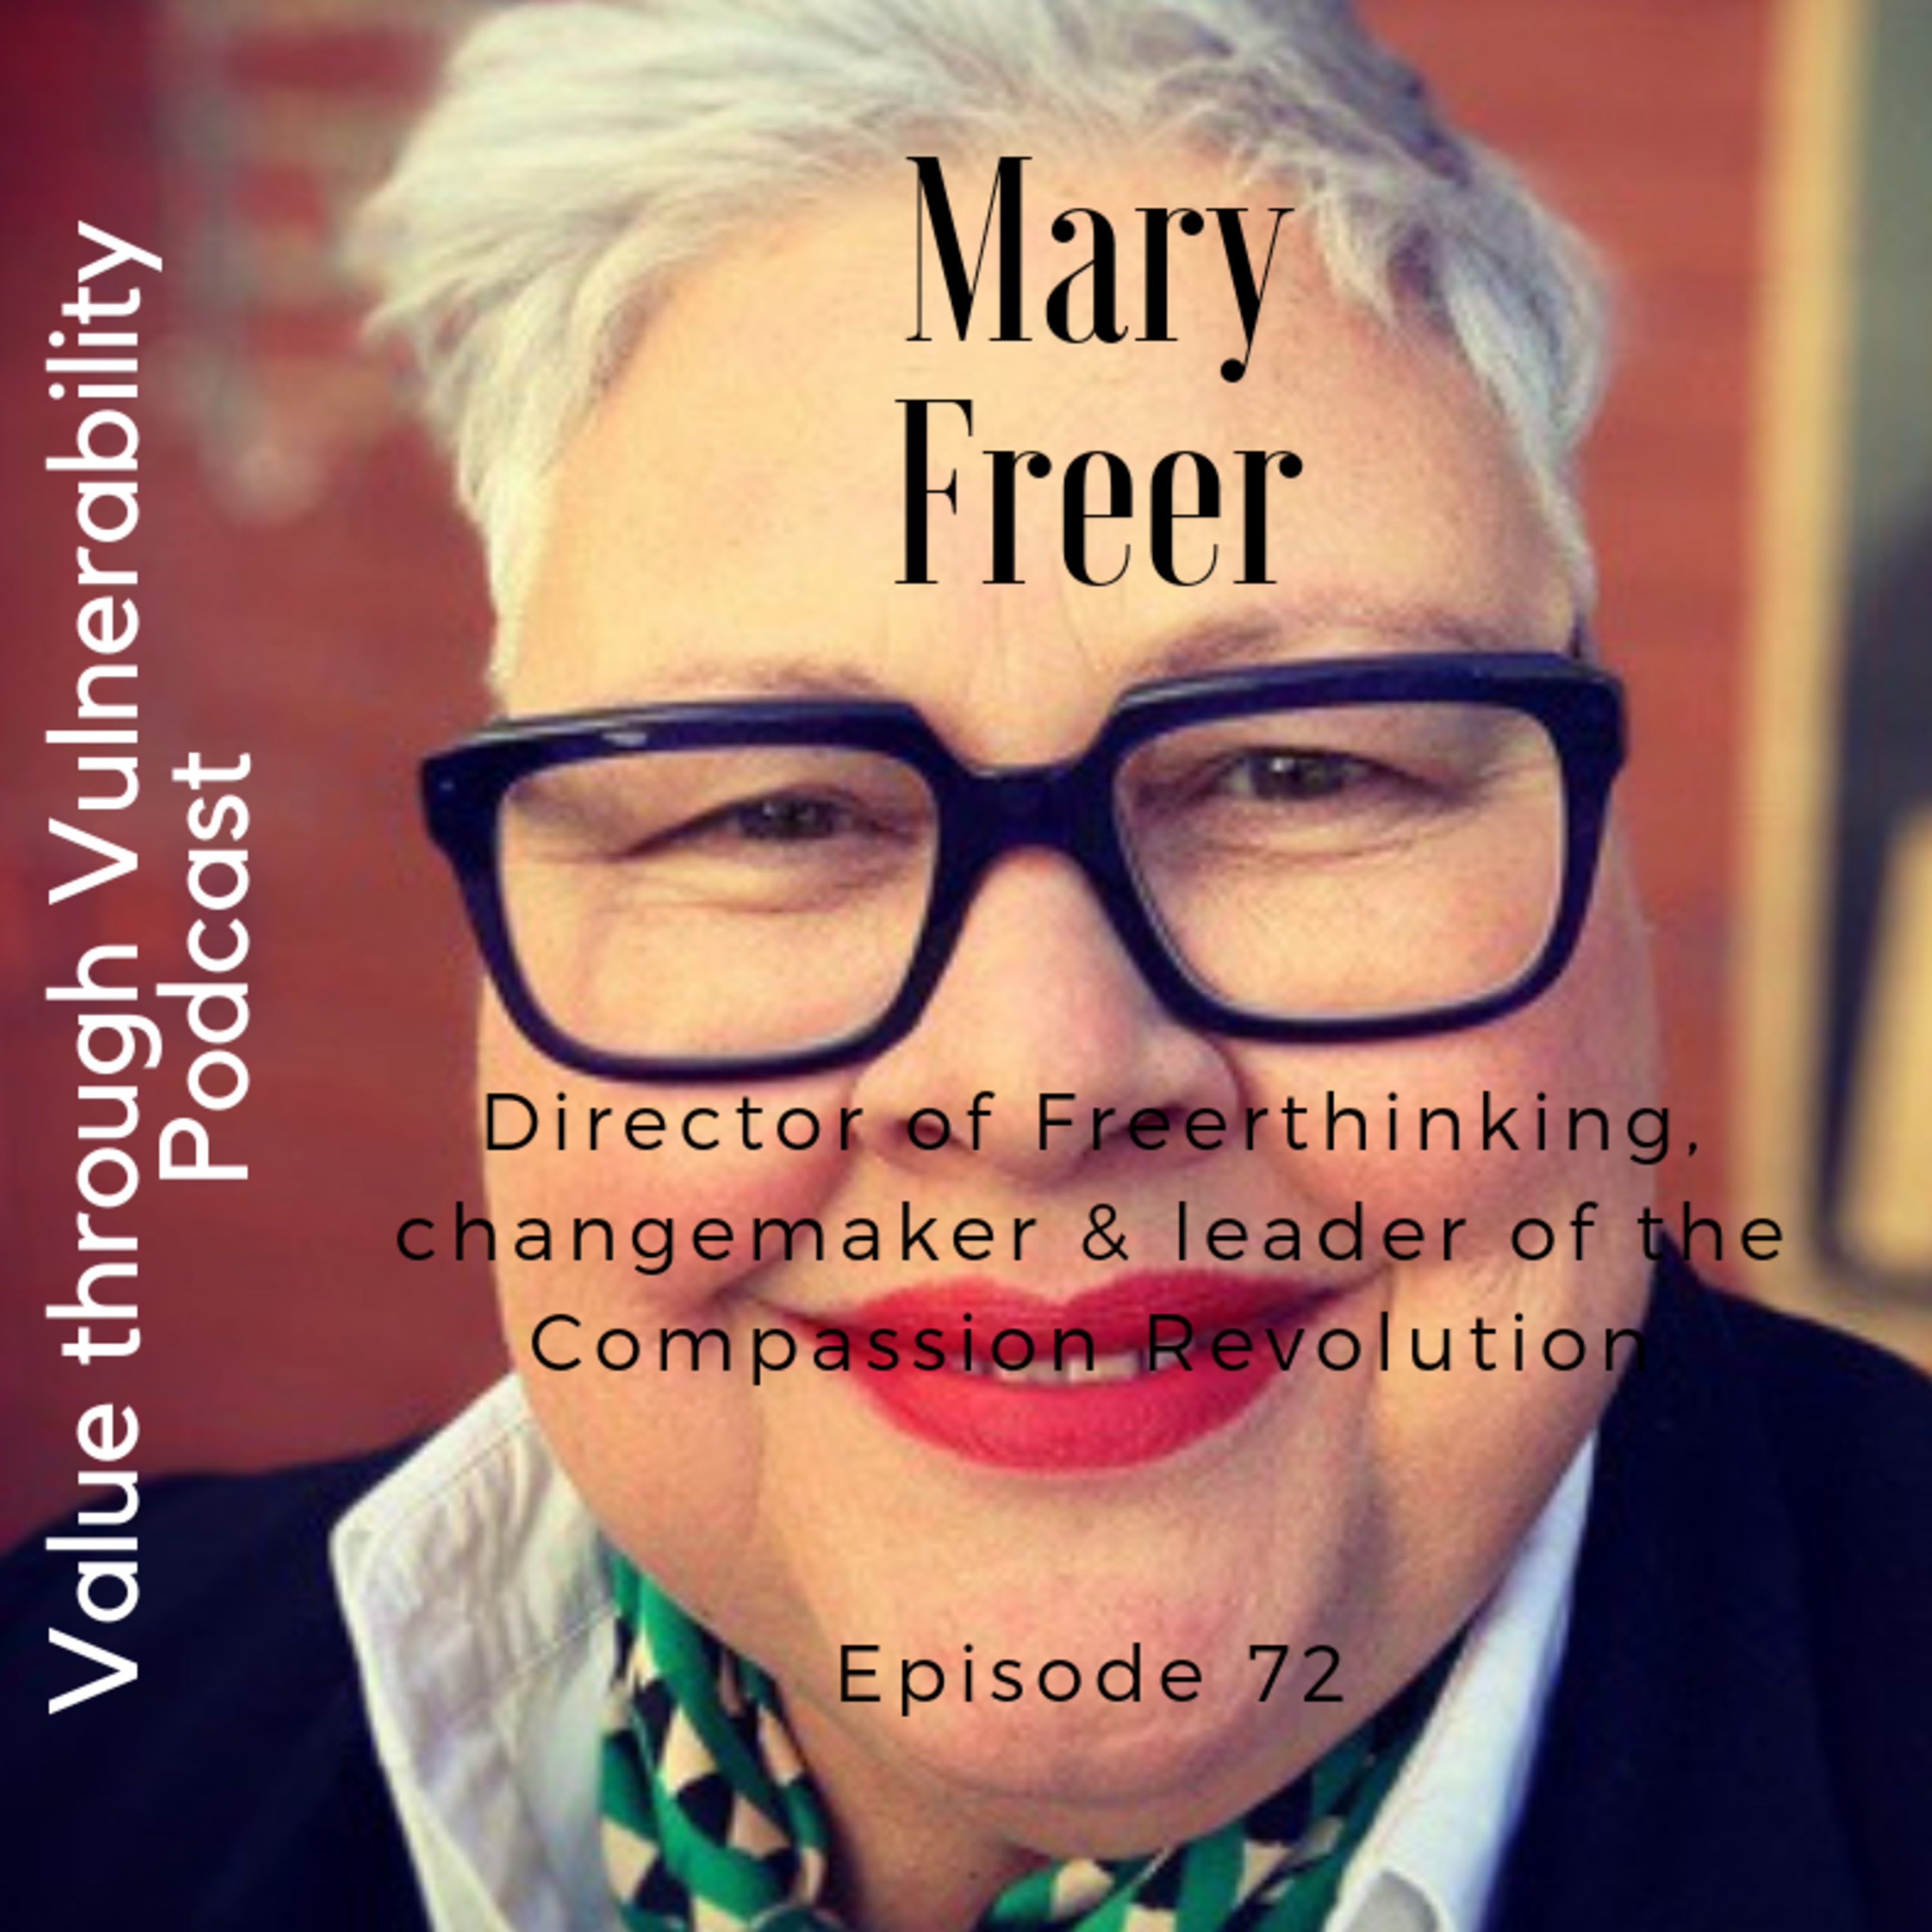 Episode 72 - Mary Freer, Director of Freerthinking, Changemaker & leader of the Compassion Revolution